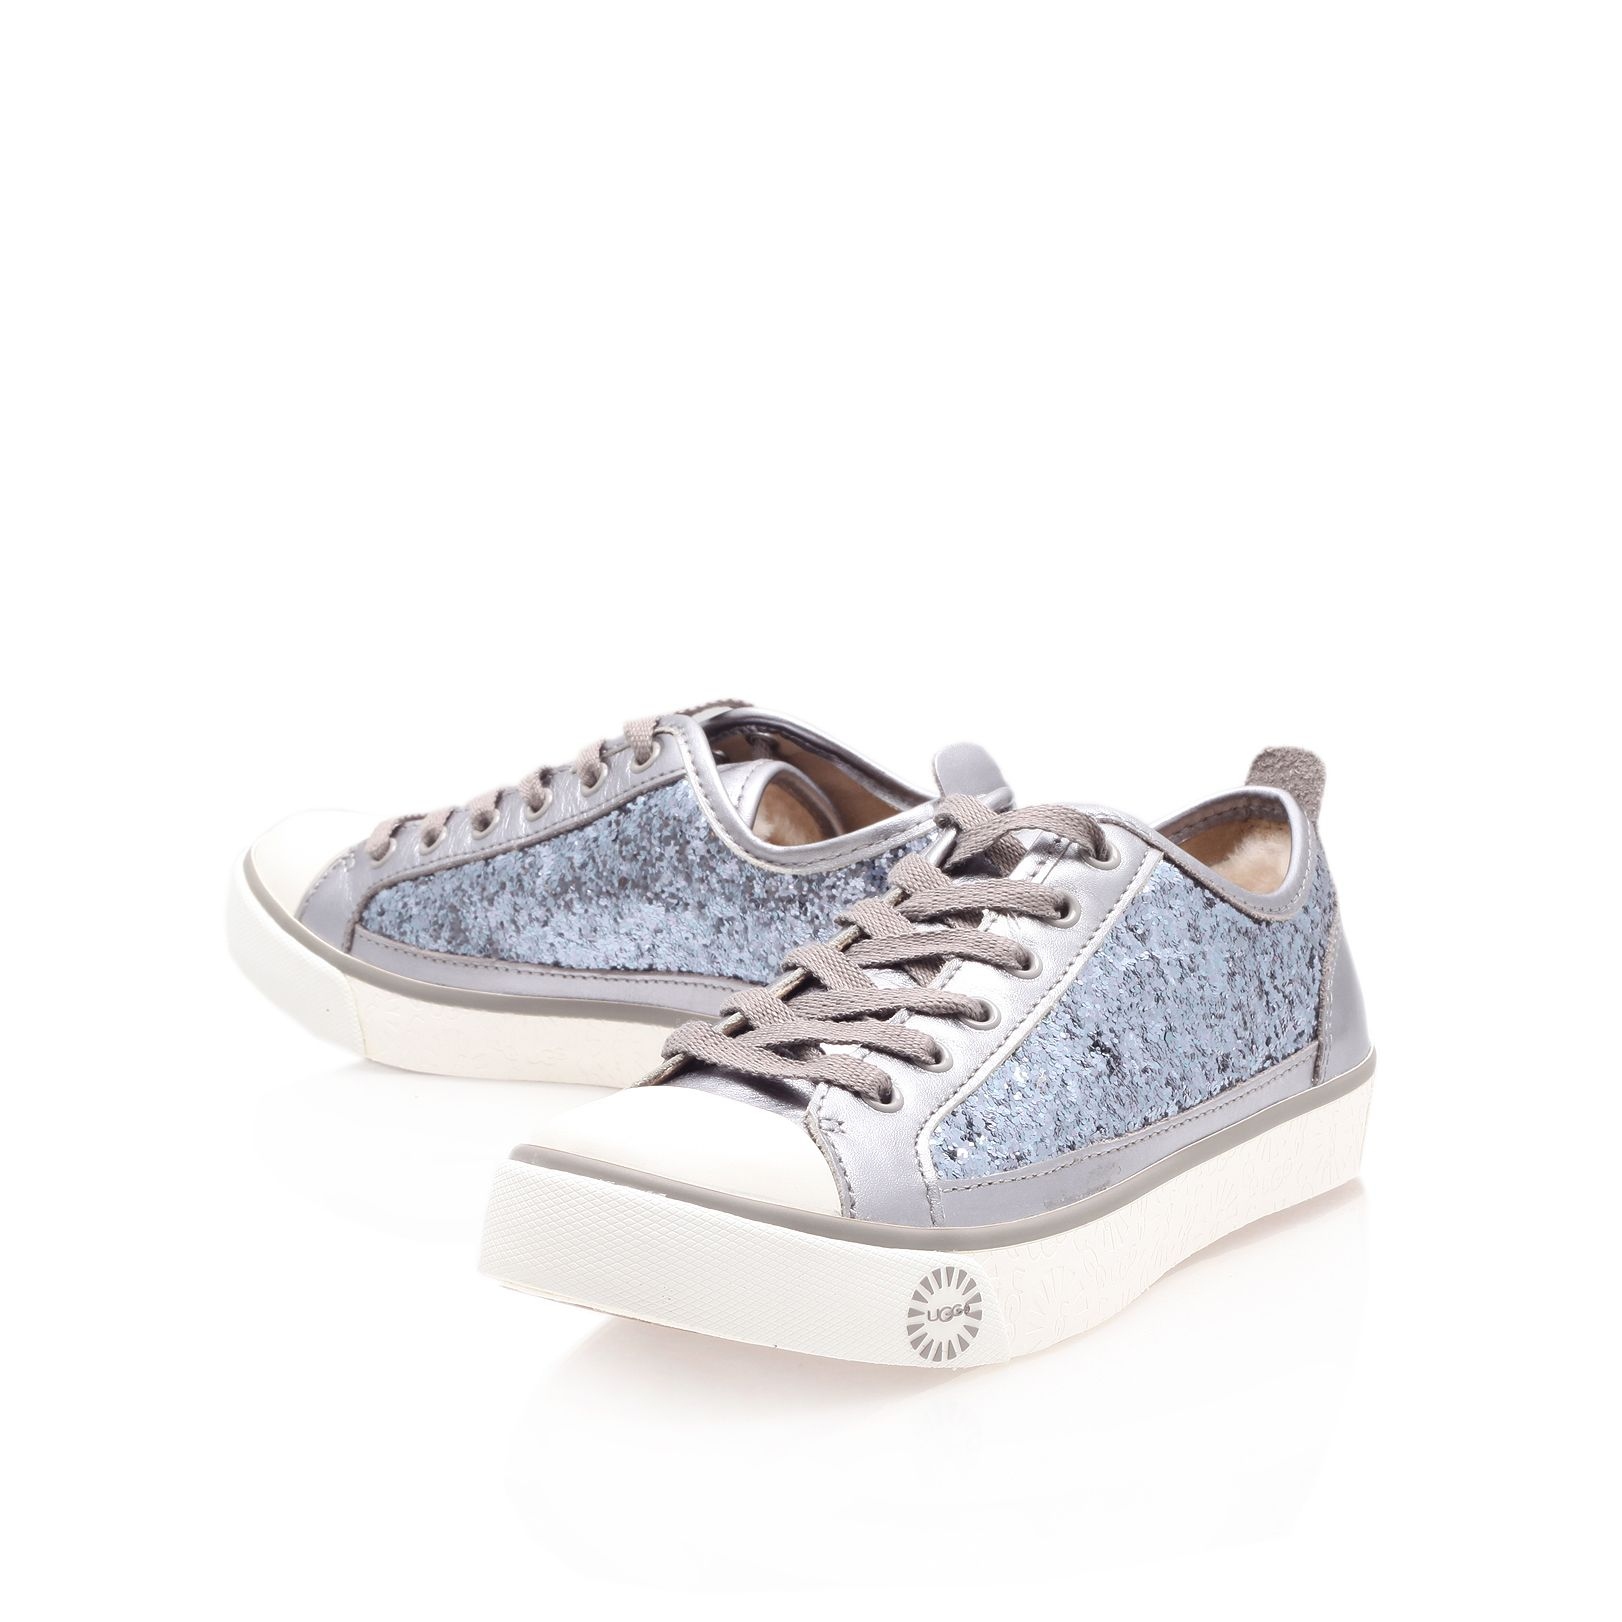 Evera glitter shoes